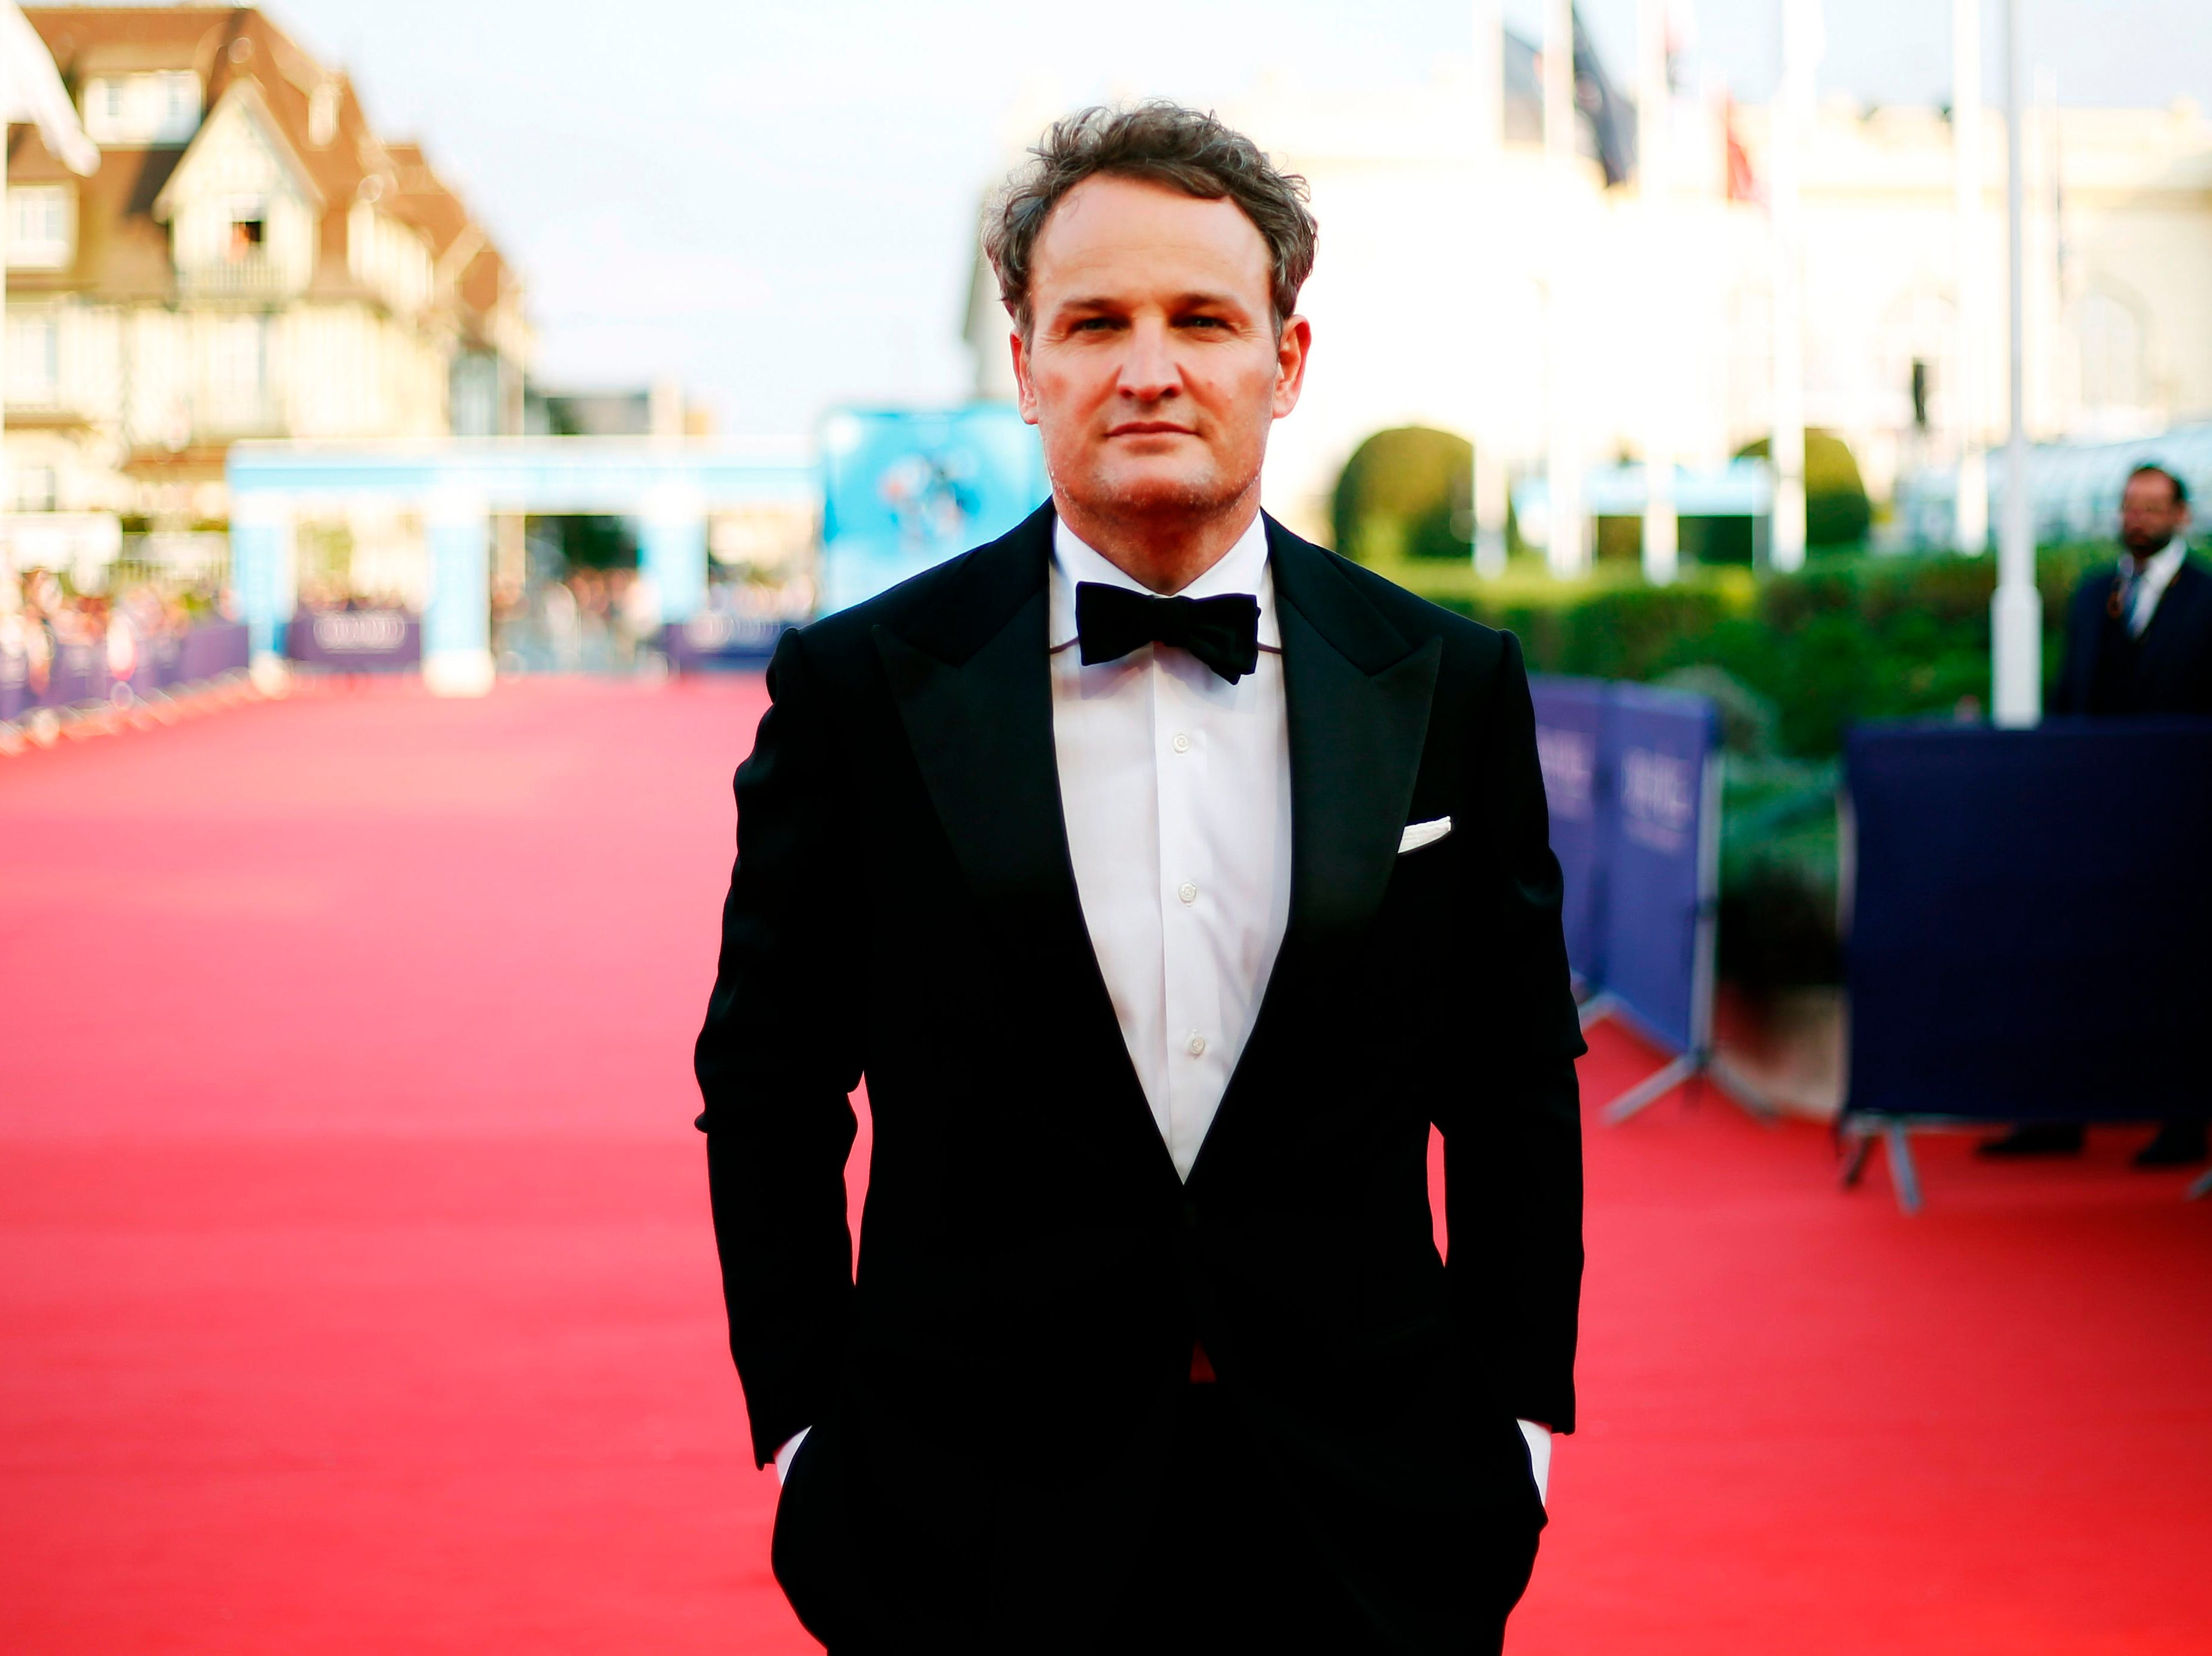 That's a movie star: Jason Clarke poses on the red carpet before the opening ceremony of the 44th Deauville US Film Festival on Aug. 31, 2018.